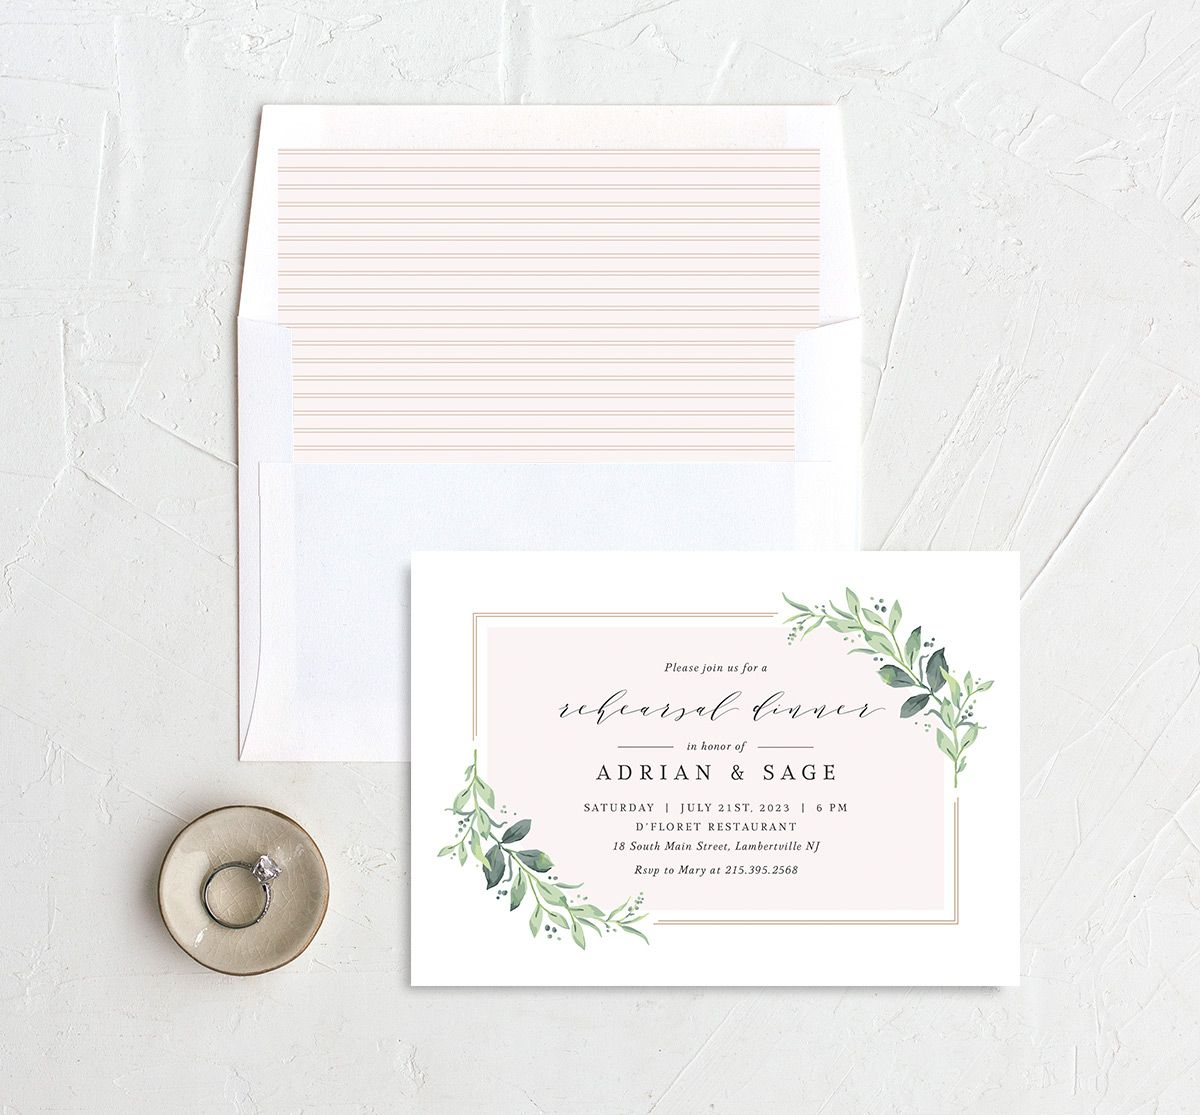 Classic Greenery Rehearsal Invitation with DIY liner in pink